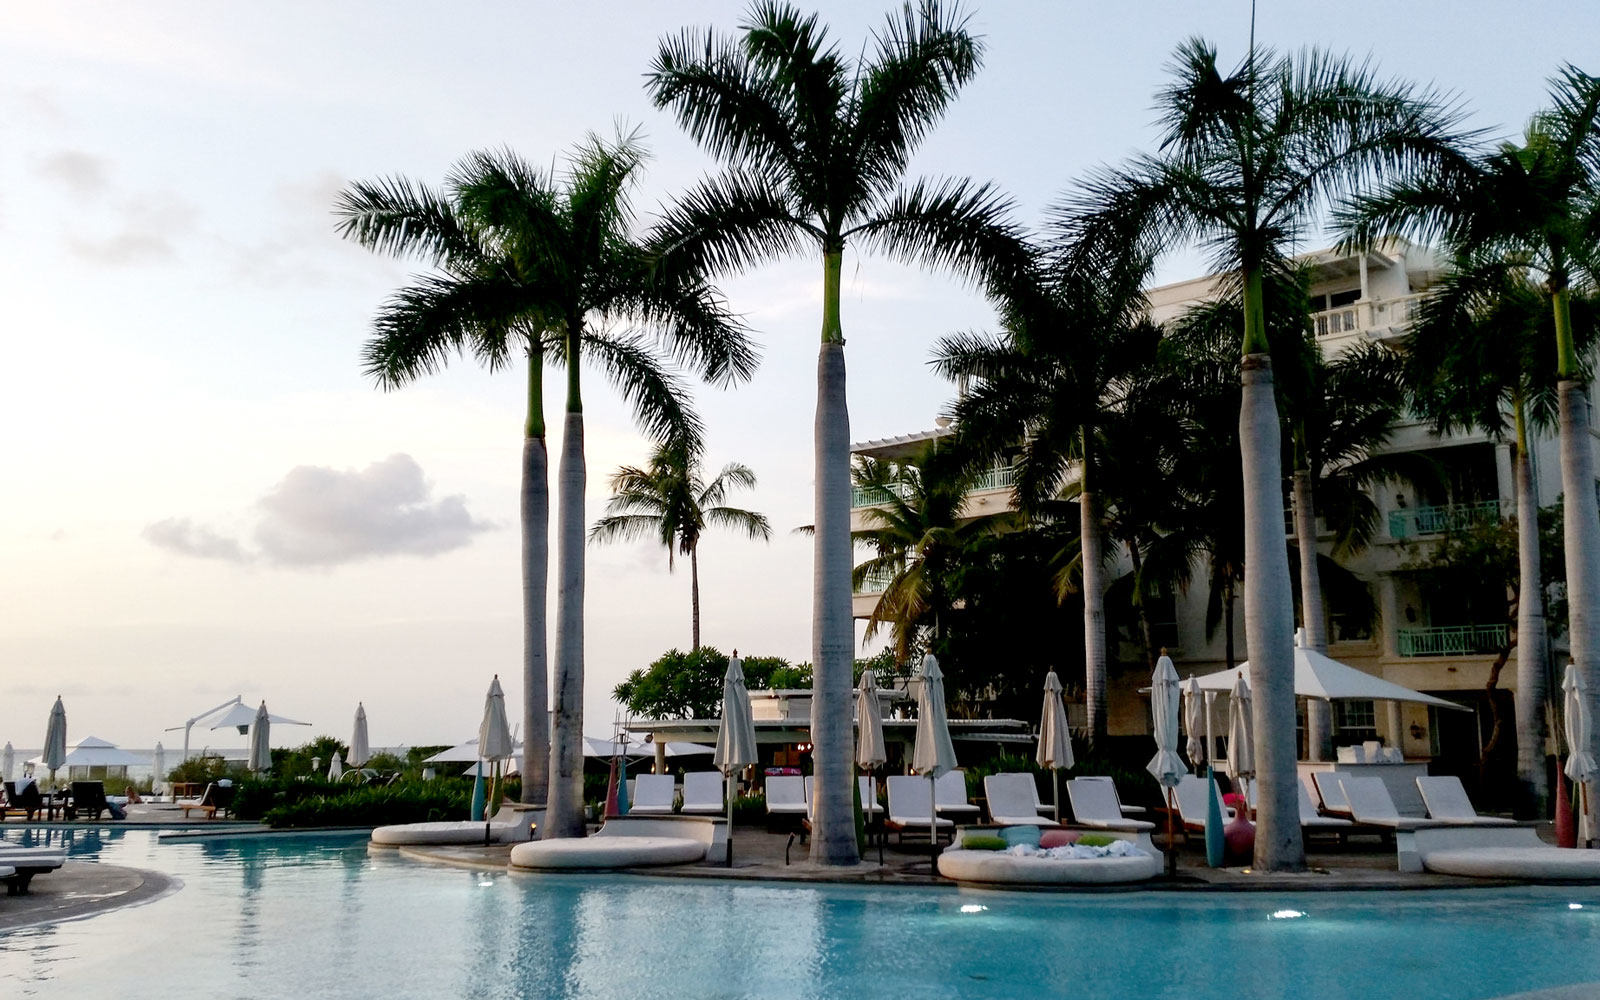 Regent Palms in Providenciales, Turks & Caicos